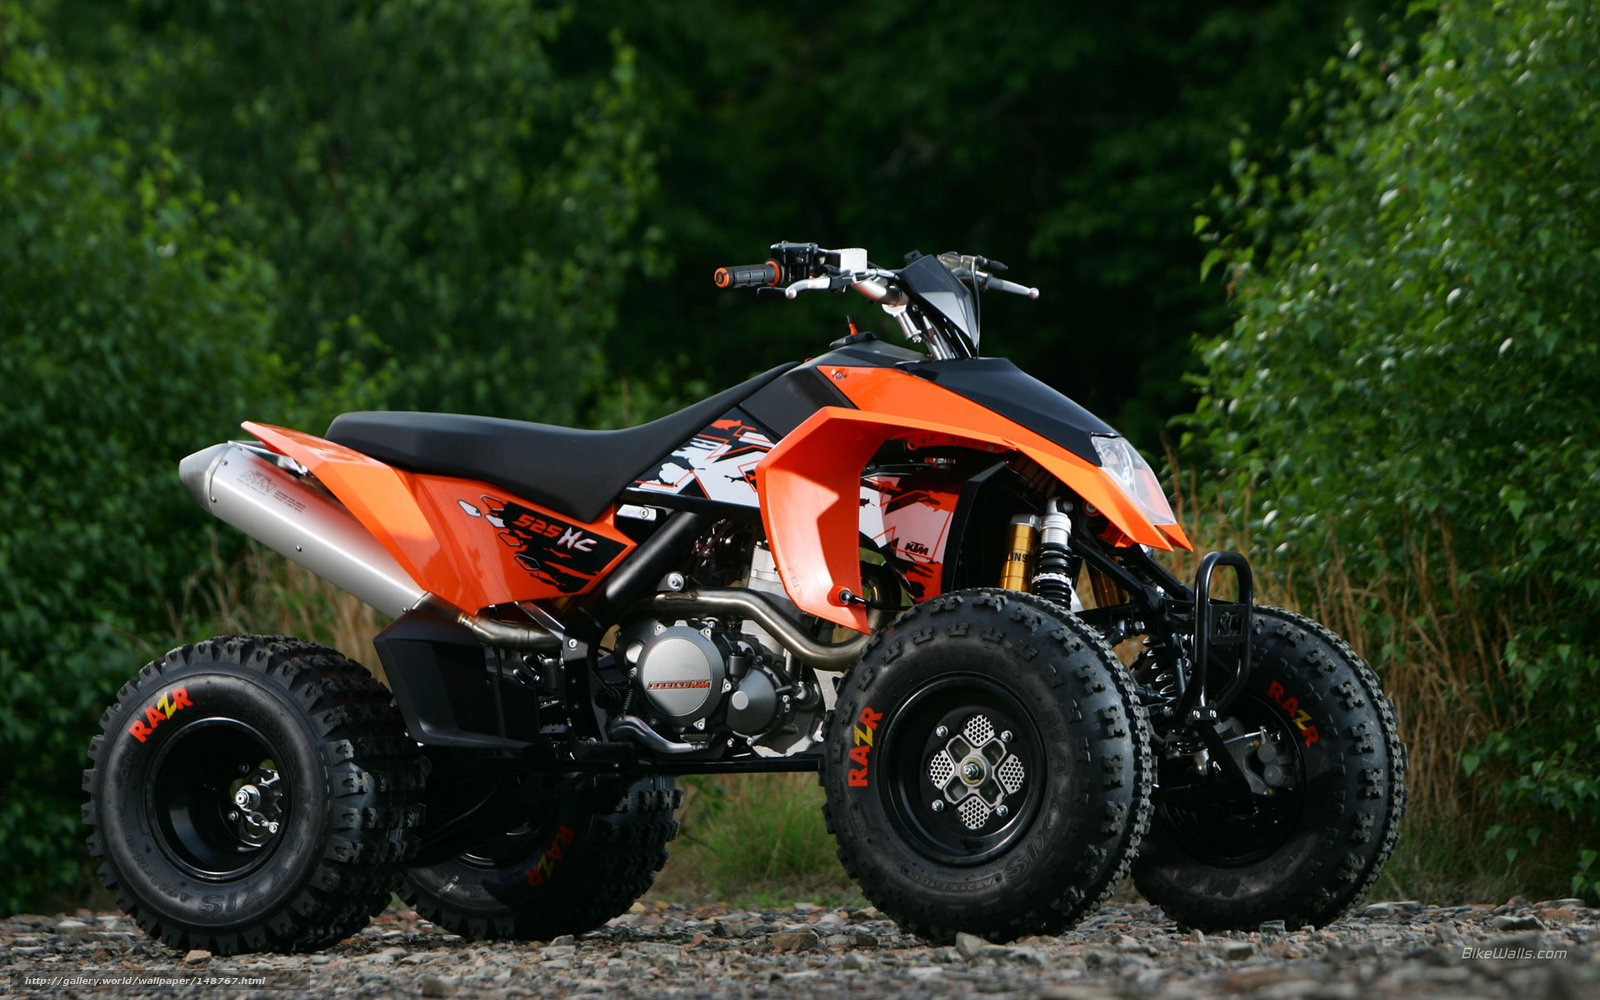 download wallpaper ktm atv 525 xc atv 525 xc atv 2008 free desktop wallpaper in the. Black Bedroom Furniture Sets. Home Design Ideas